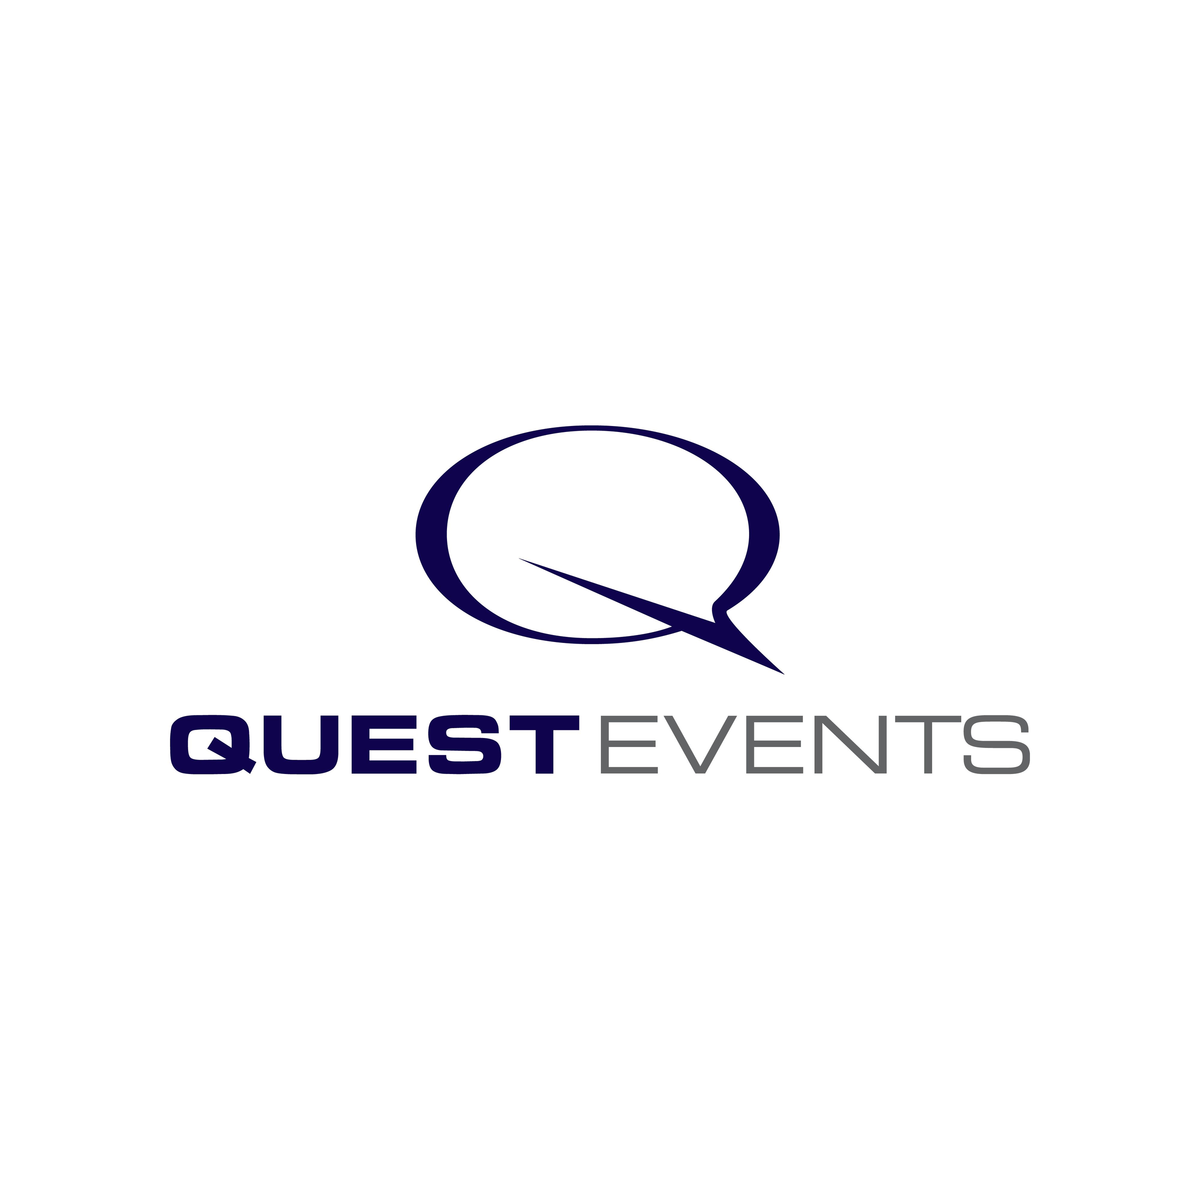 Quest Events - Quest Events